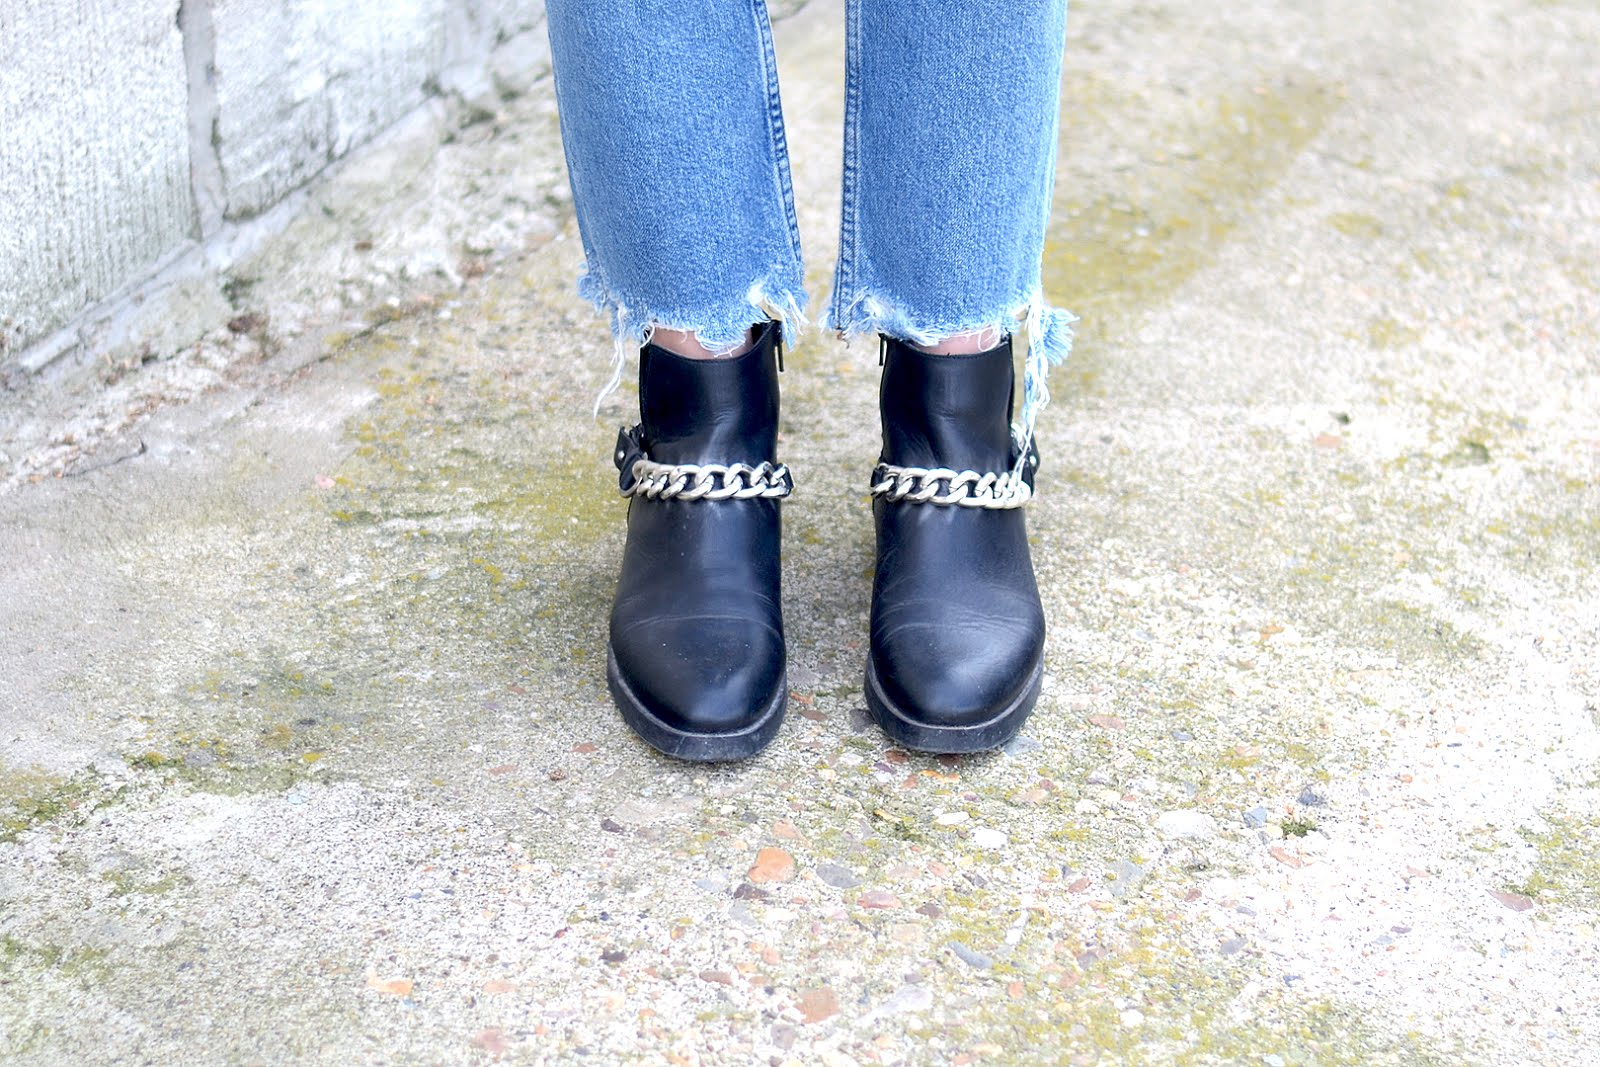 Zara, chain boots, ripped jeans